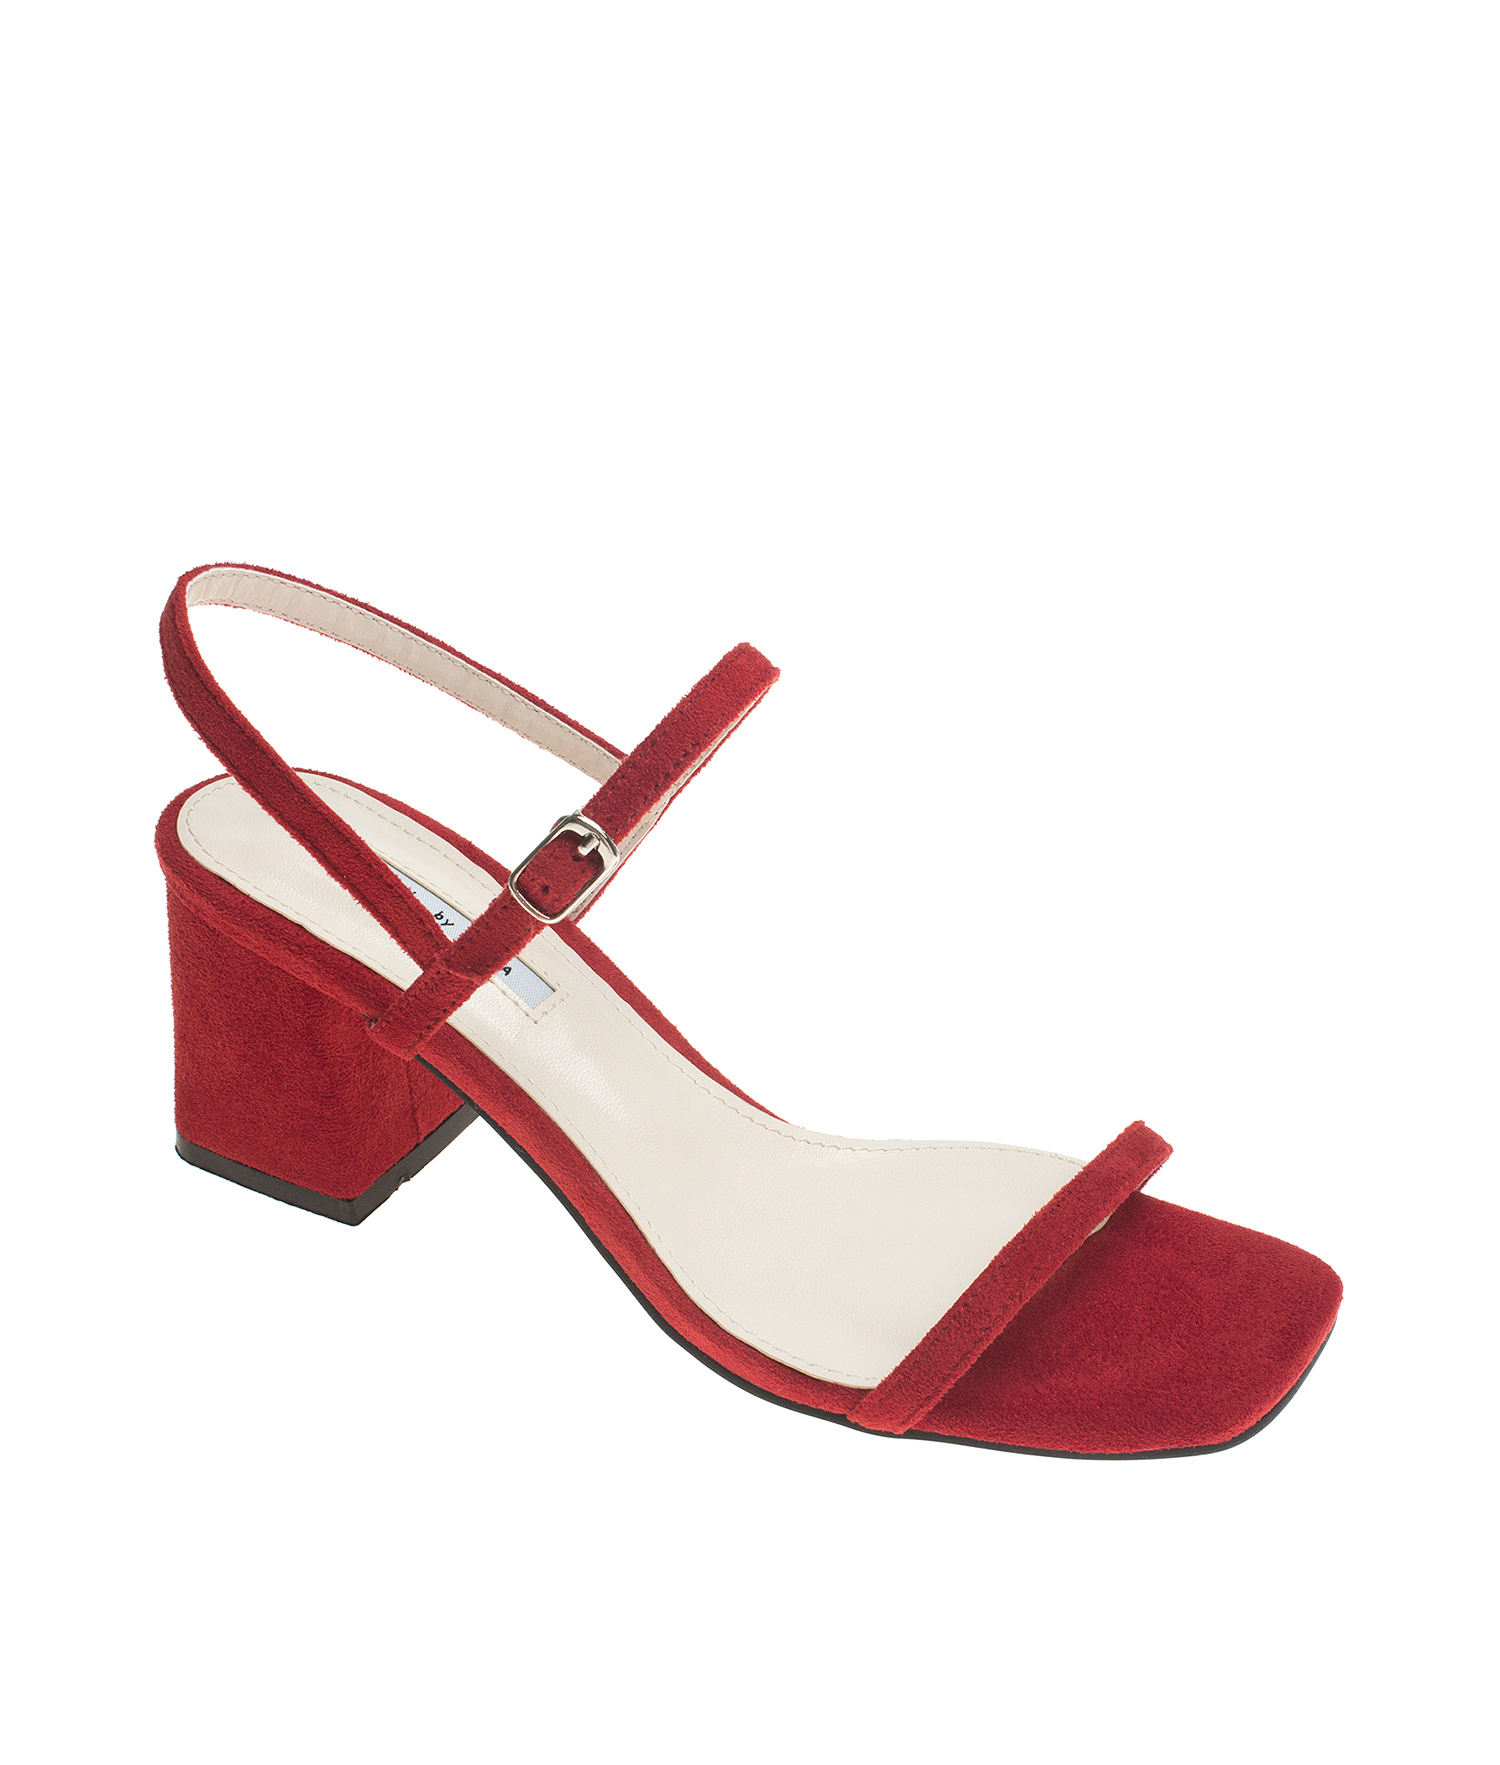 5f947b0c8 AnnaKastle Womens Suede Ankle Strap Block Heel Sandals Red